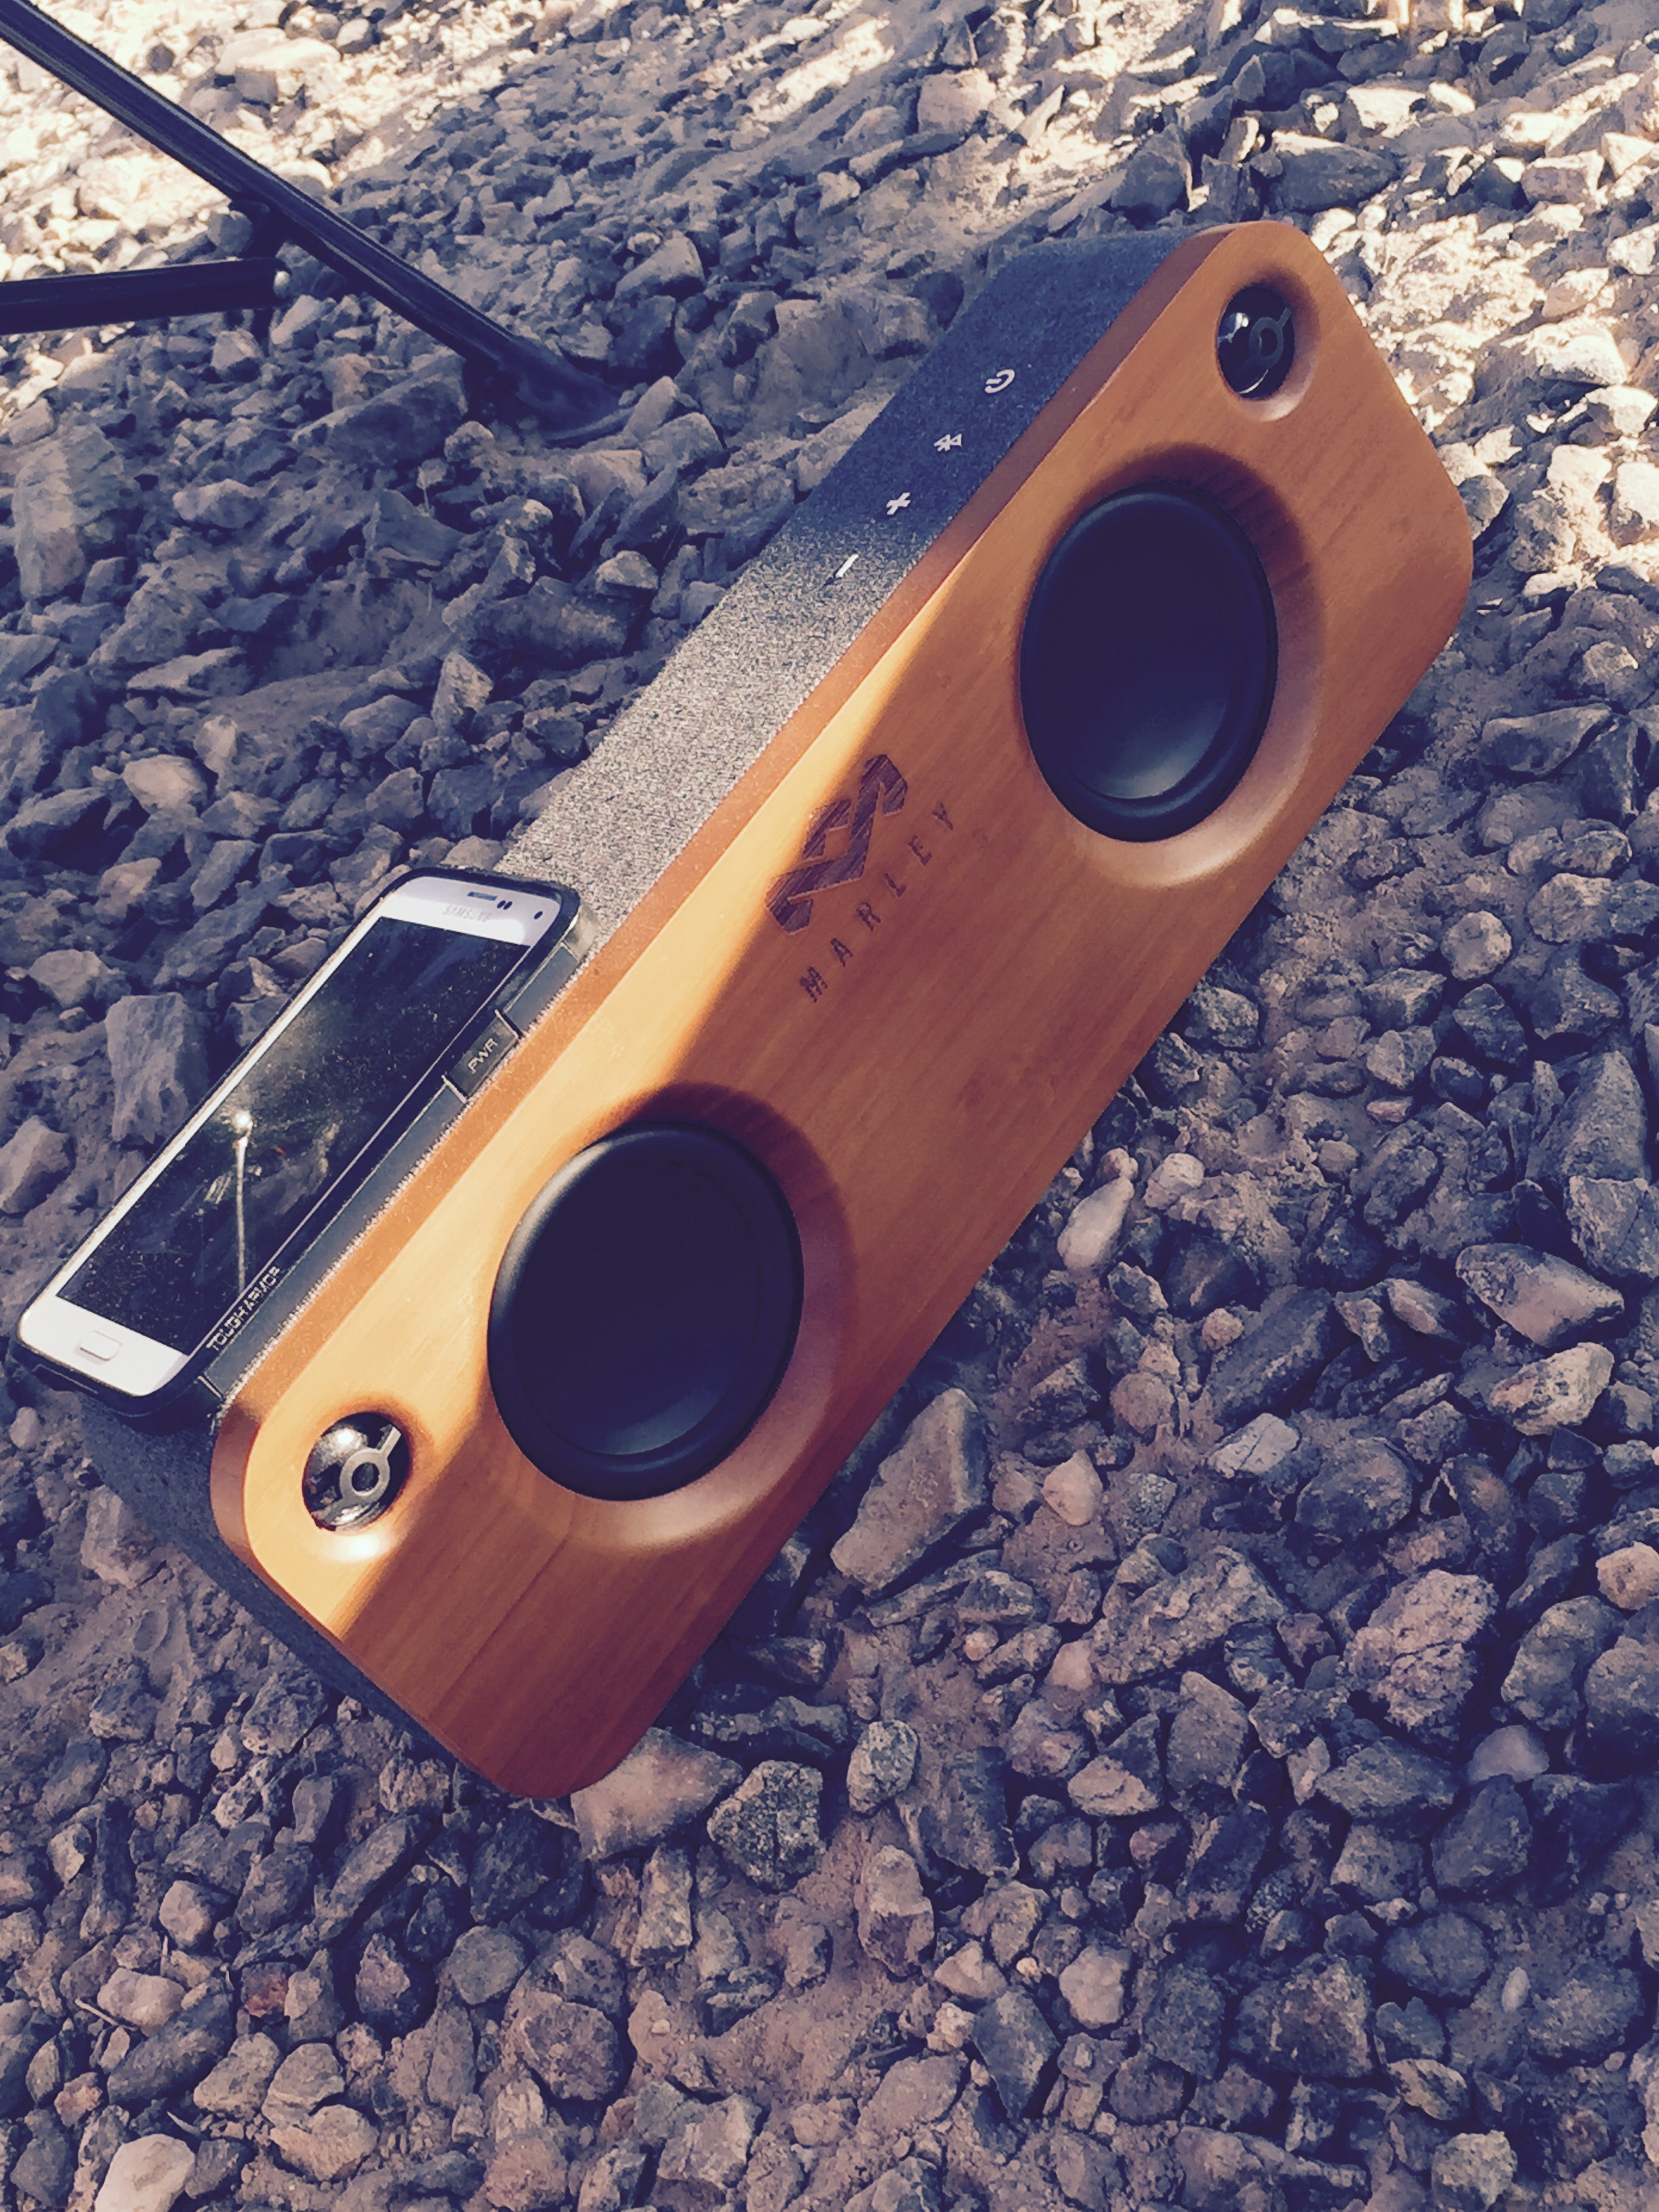 Portable Bluetooth stereo, House of Marley 179$